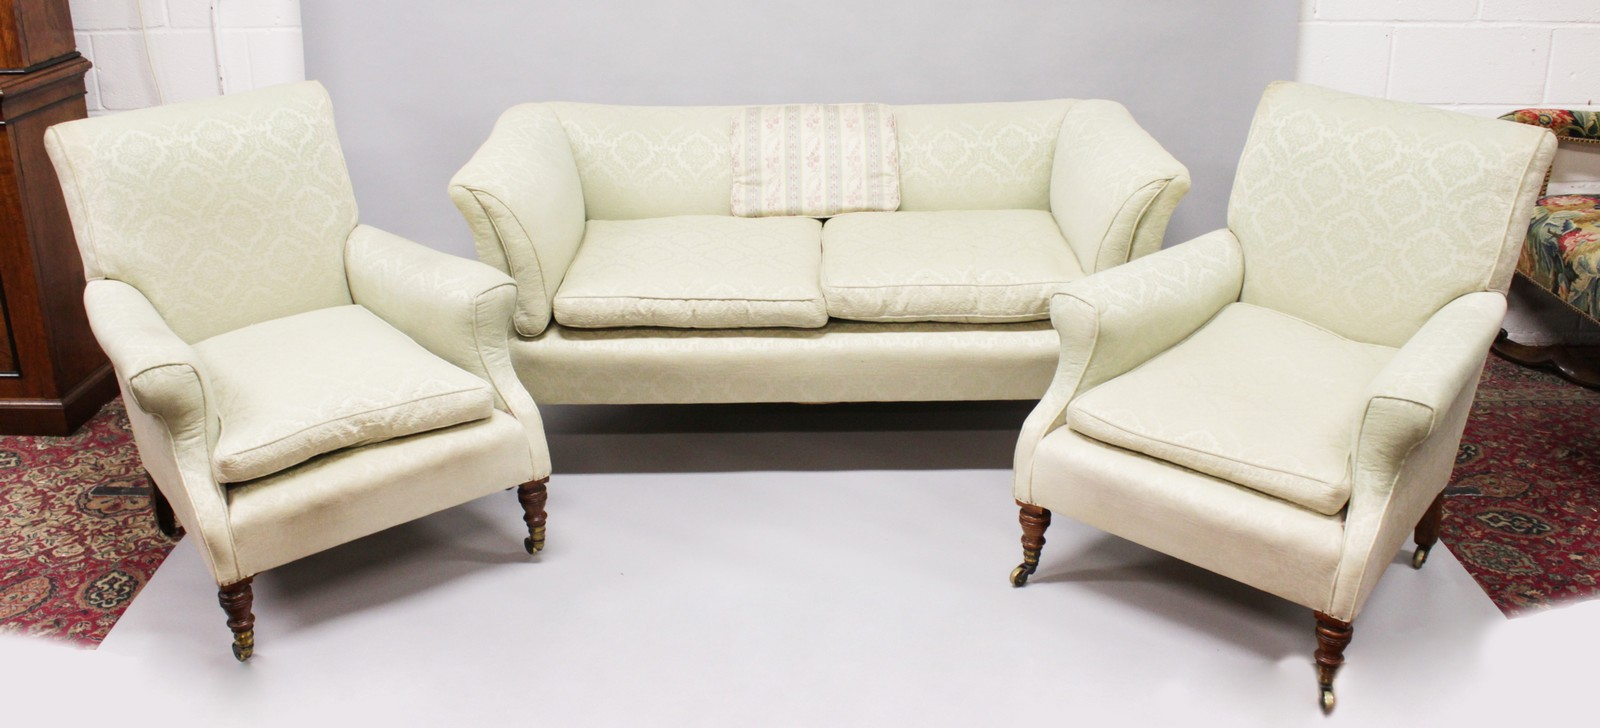 Lot 1030 - HOWARD & SONS, A THREE PIECE UPHOLSTERED SUITE, comprising of a two seater settee and pair of